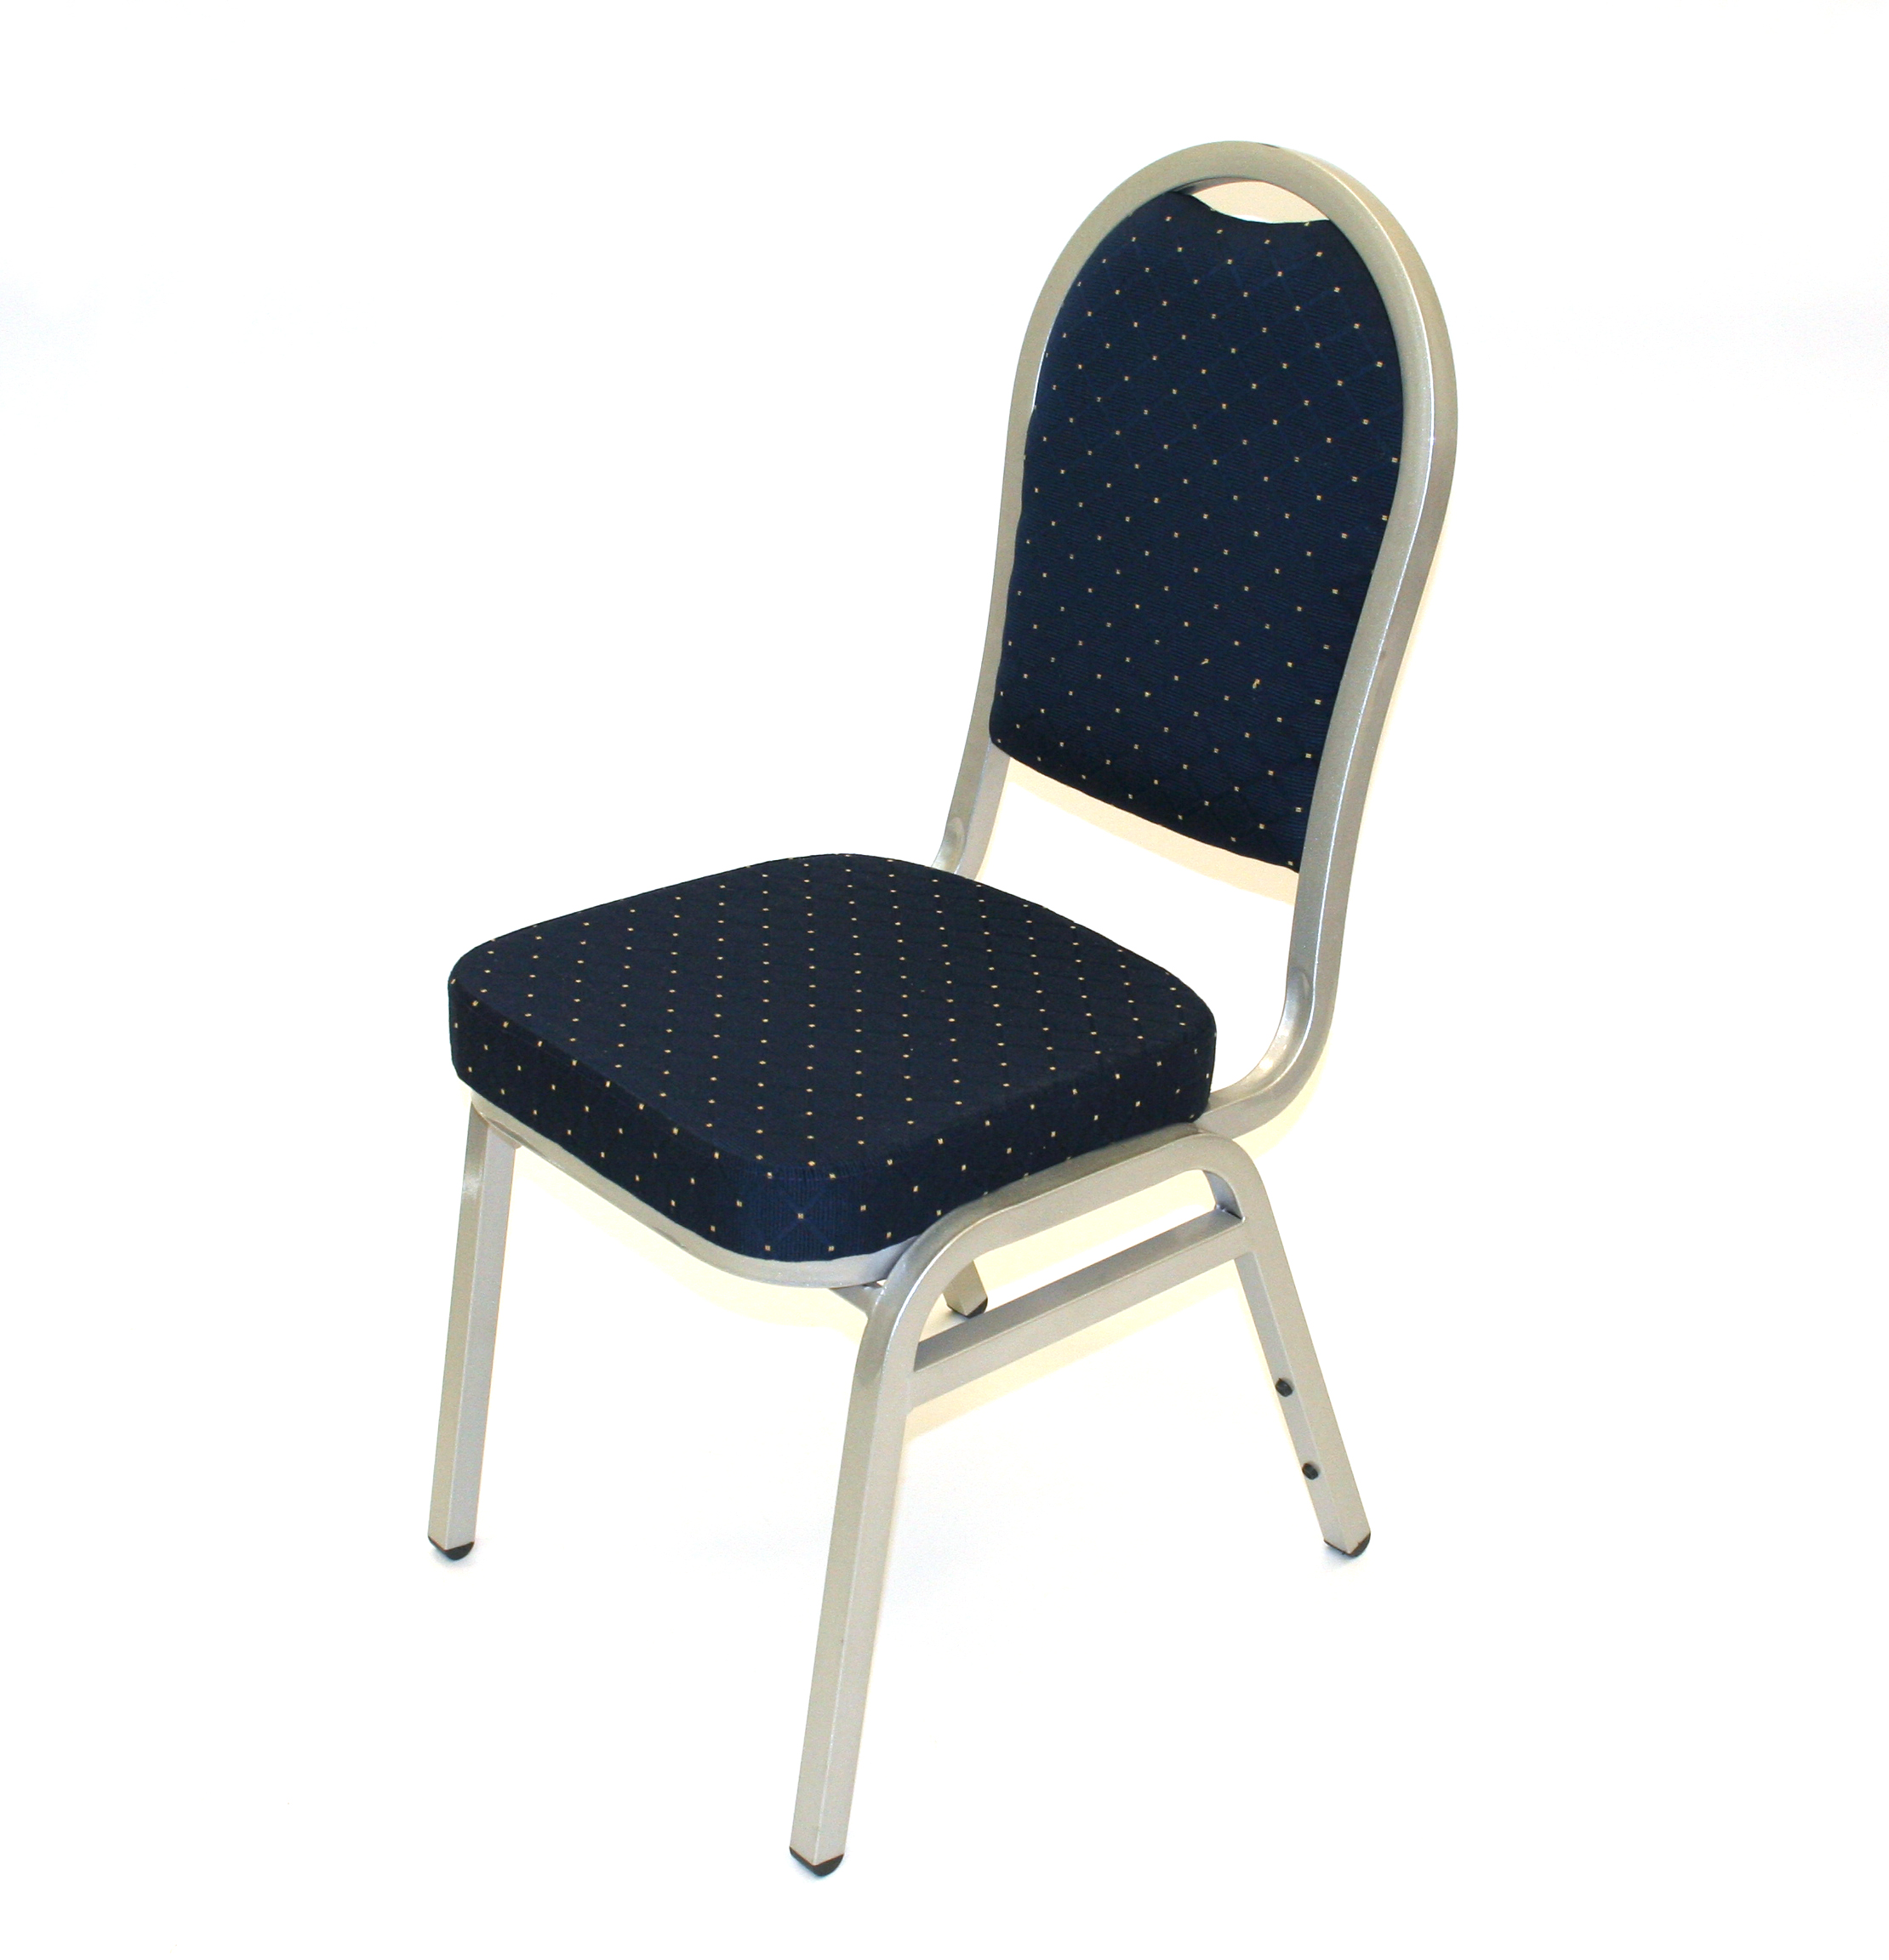 Blue & Silver Banquet Chair Hire - Weddings, Conferences - BE Event Hire